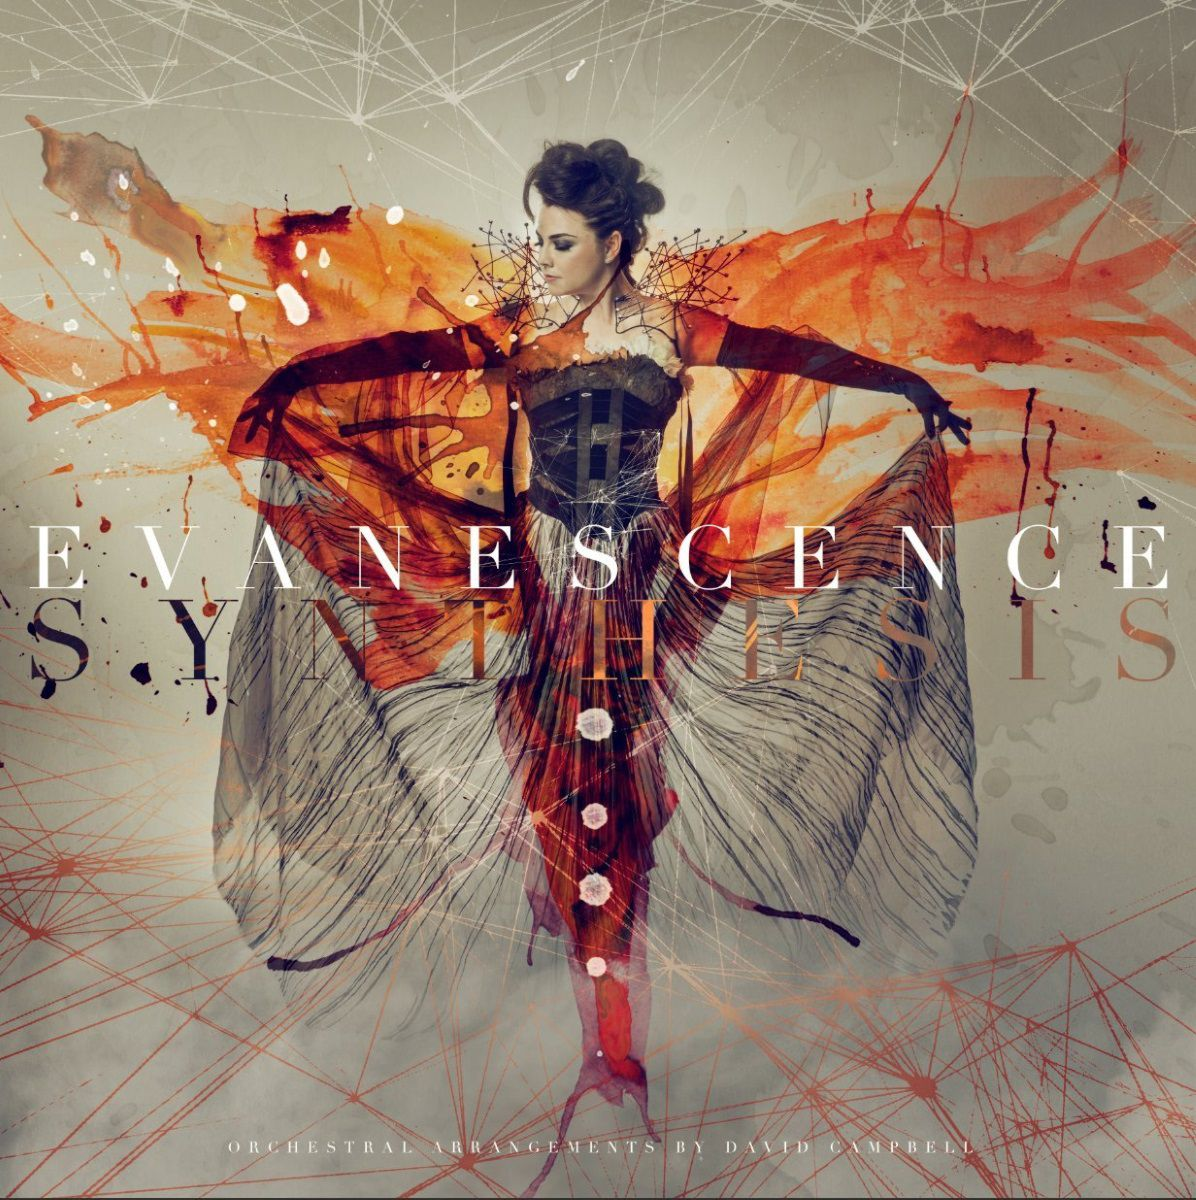 Evanescence – Synthesis. Deluxe Edition (CD + DVD) альбом для cd и dvd в интернет магазине в спб